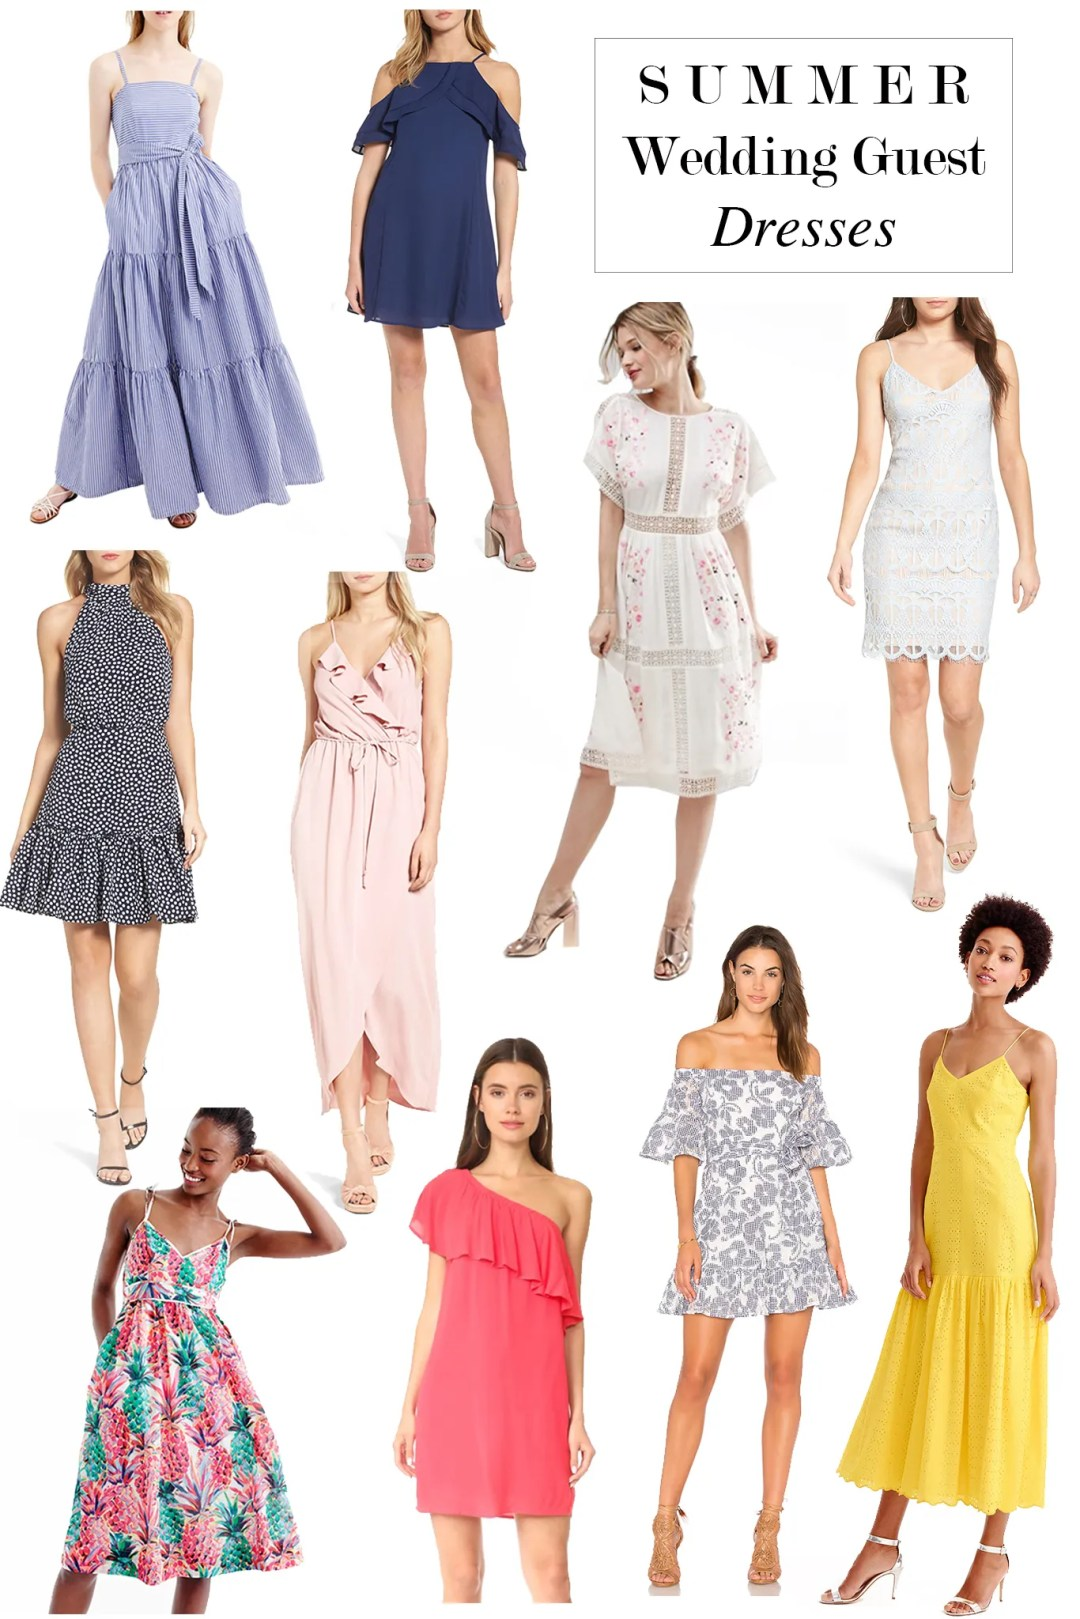 Summer Wedding Guest Dresses Seventeen Dresses Life Style Blog